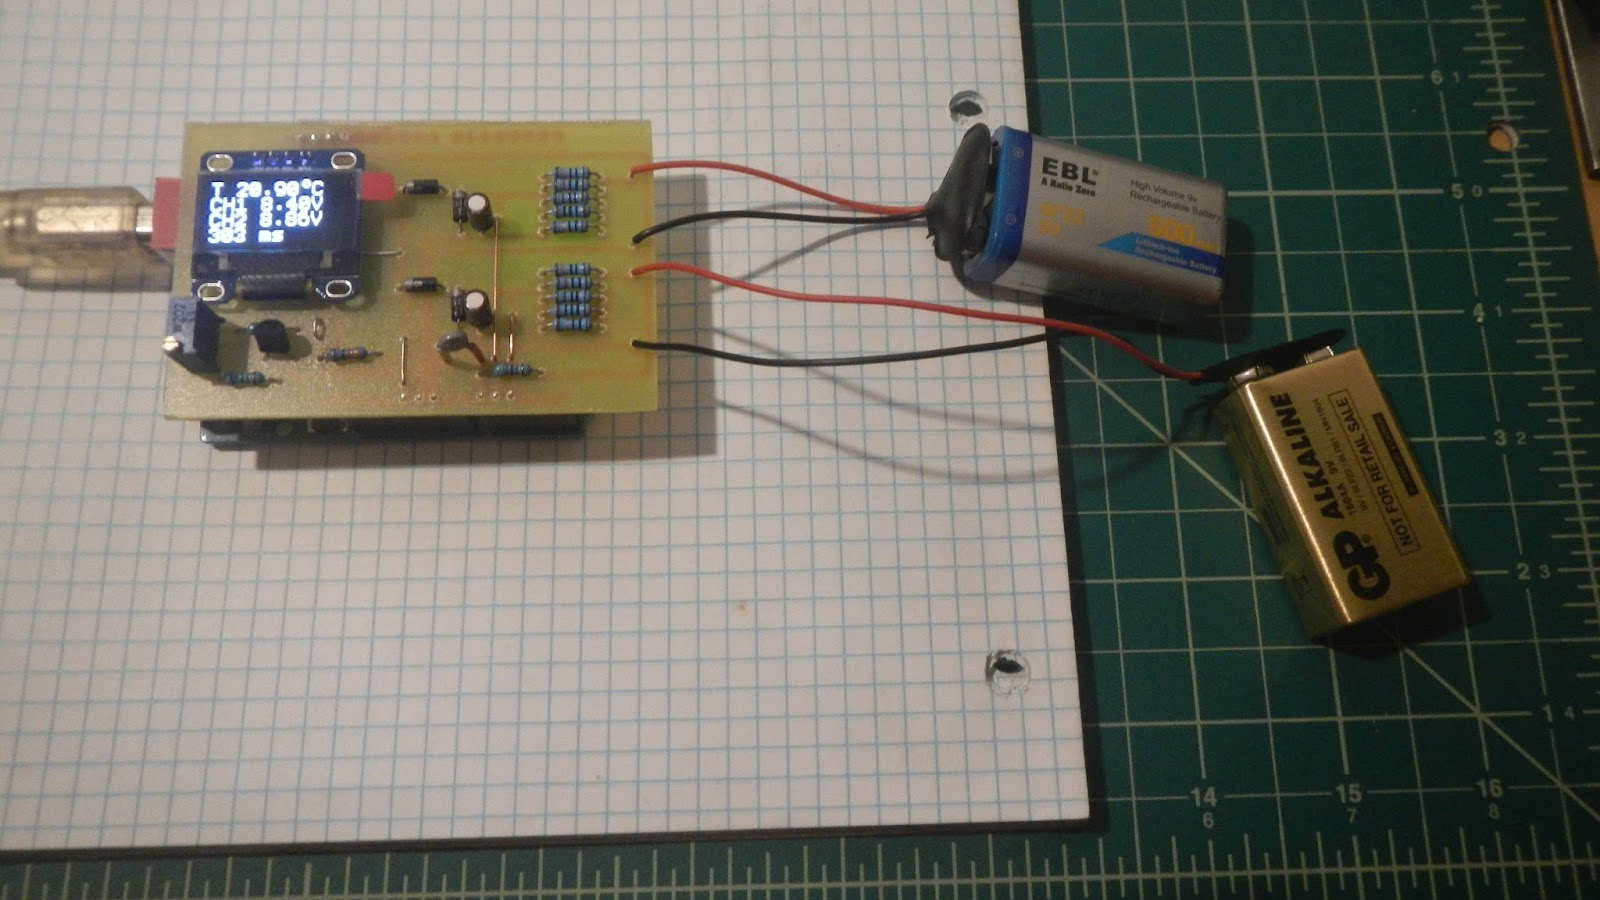 Elvis DIY Electronics Projects: Arduino, two channel voltmeter with